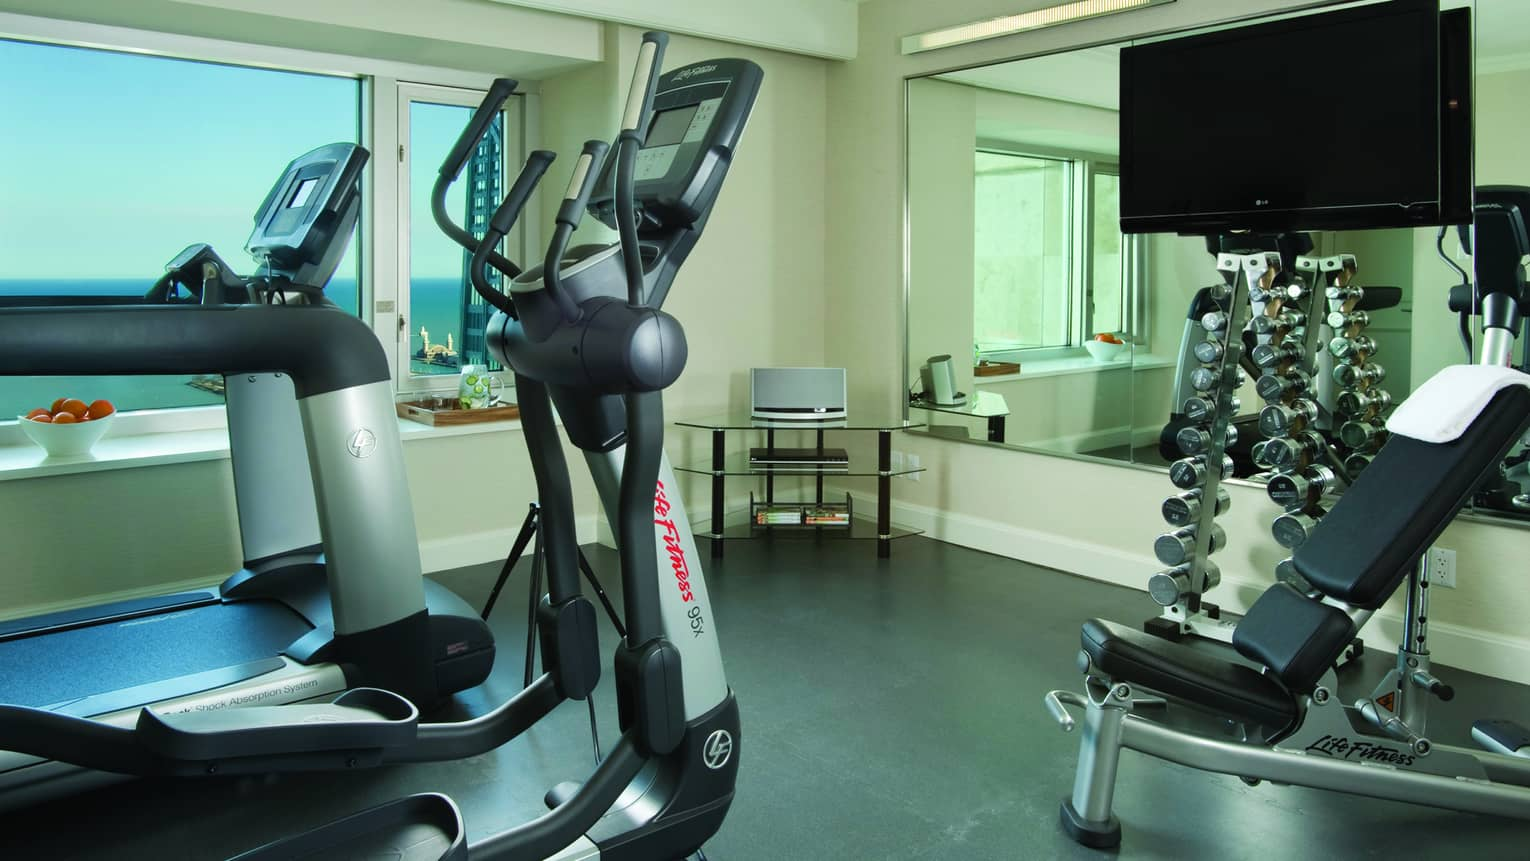 Presidential Suite private gym elliptical machine, treadmill, free weight and small flat-screen TV